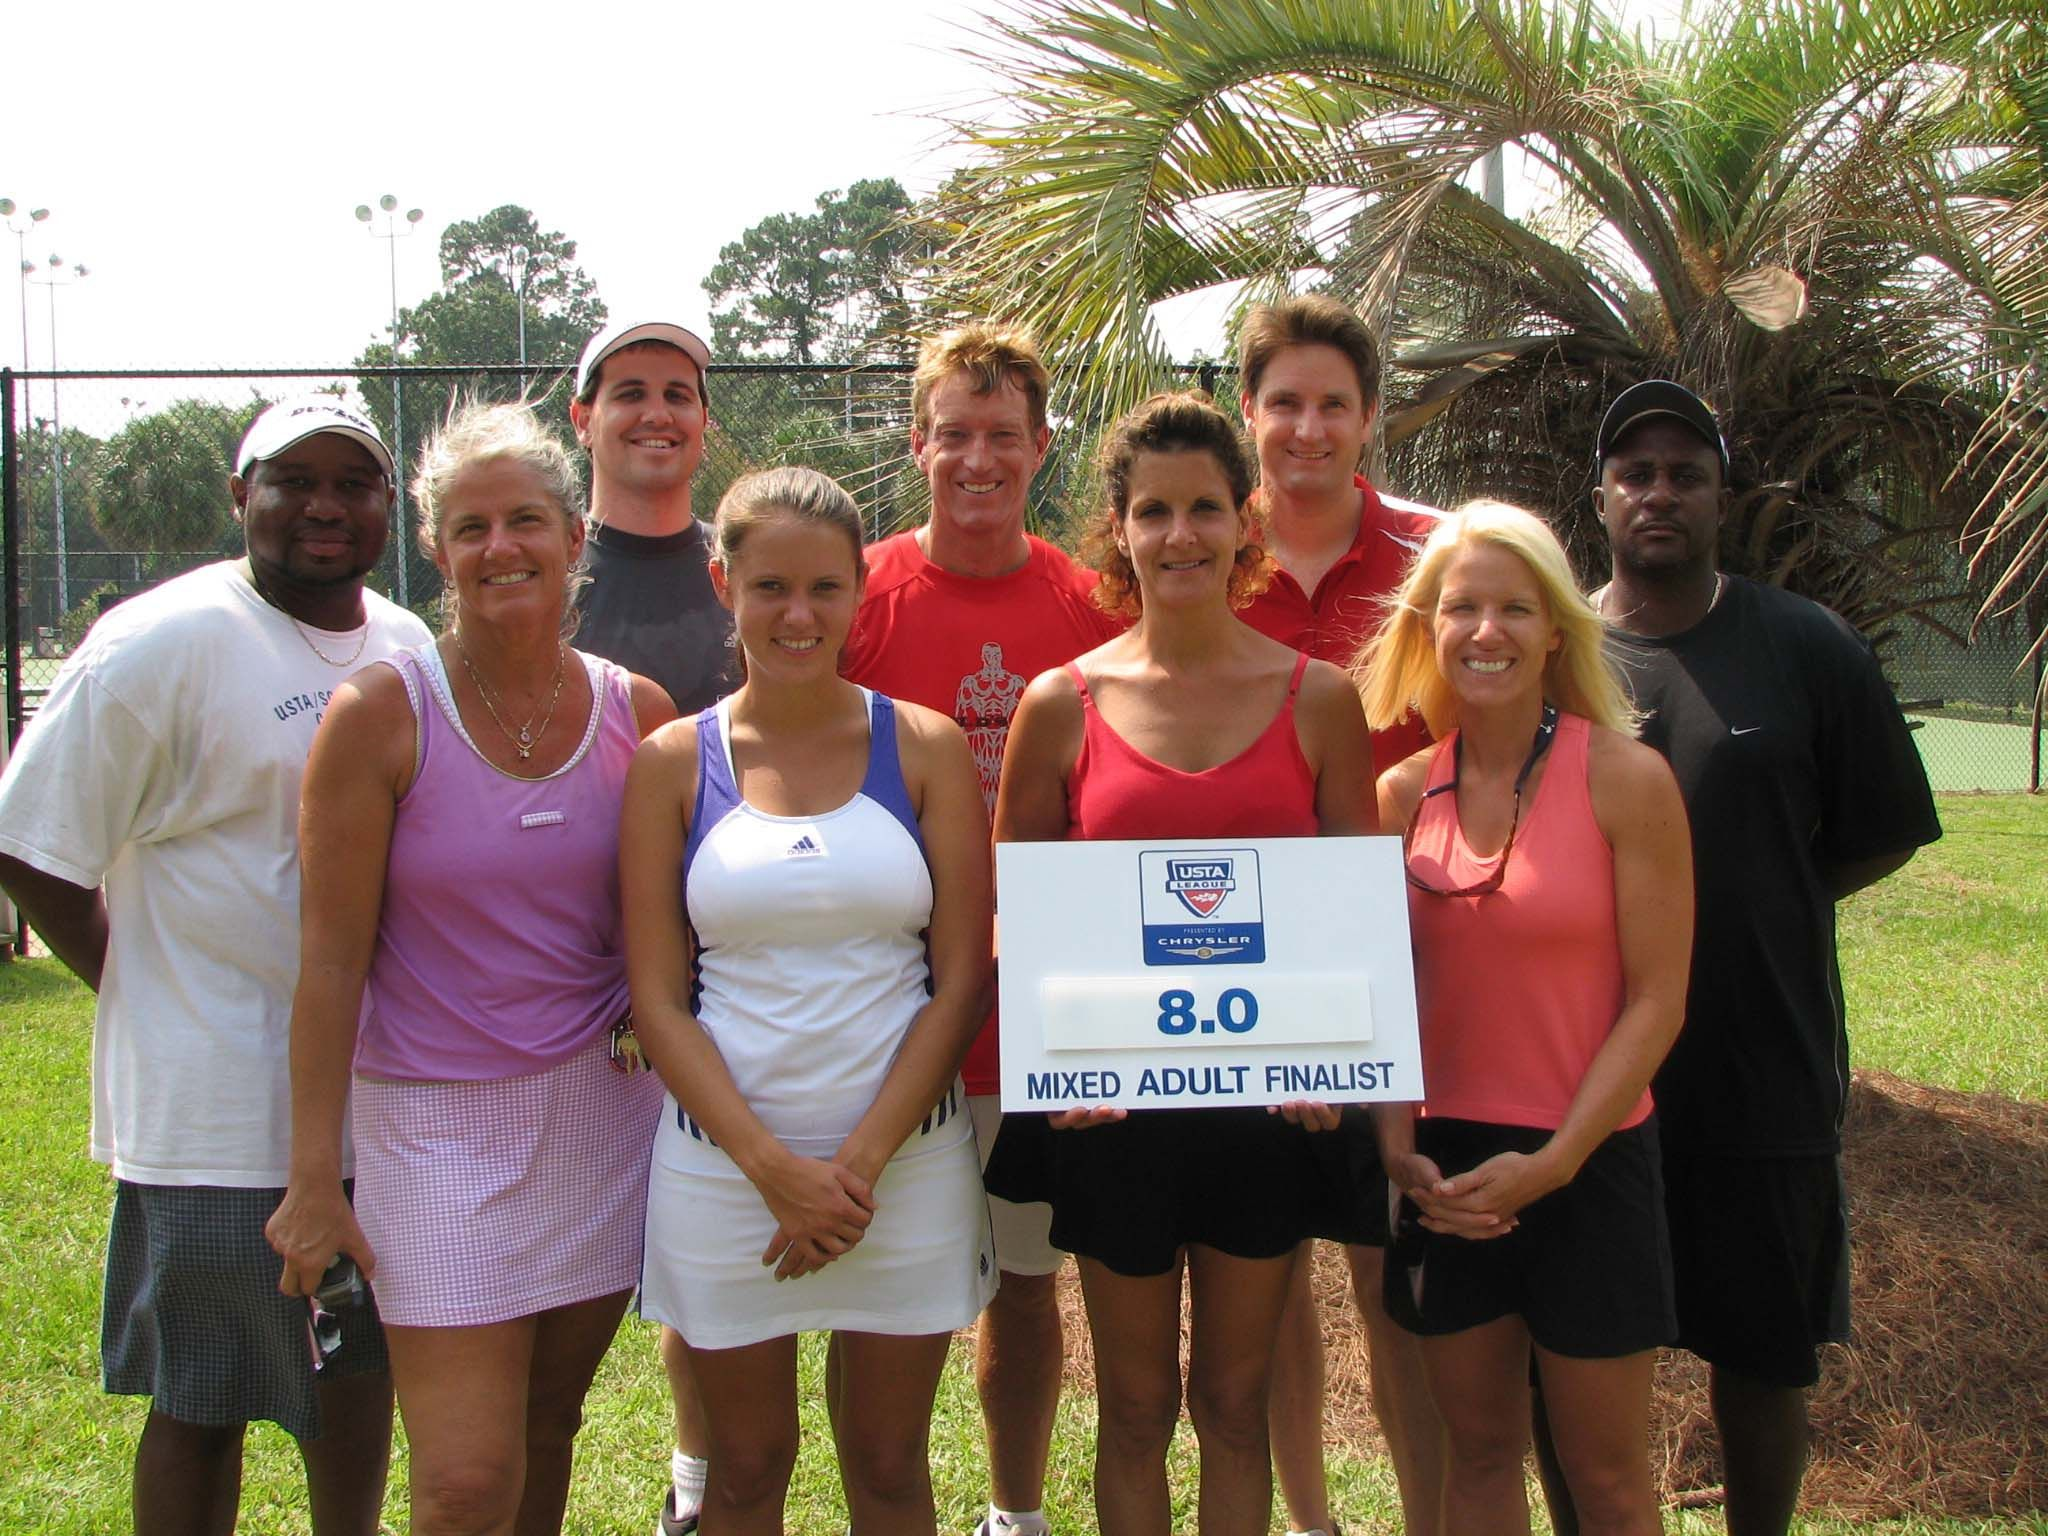 2006 Mixed 8.0 Adult Finalist